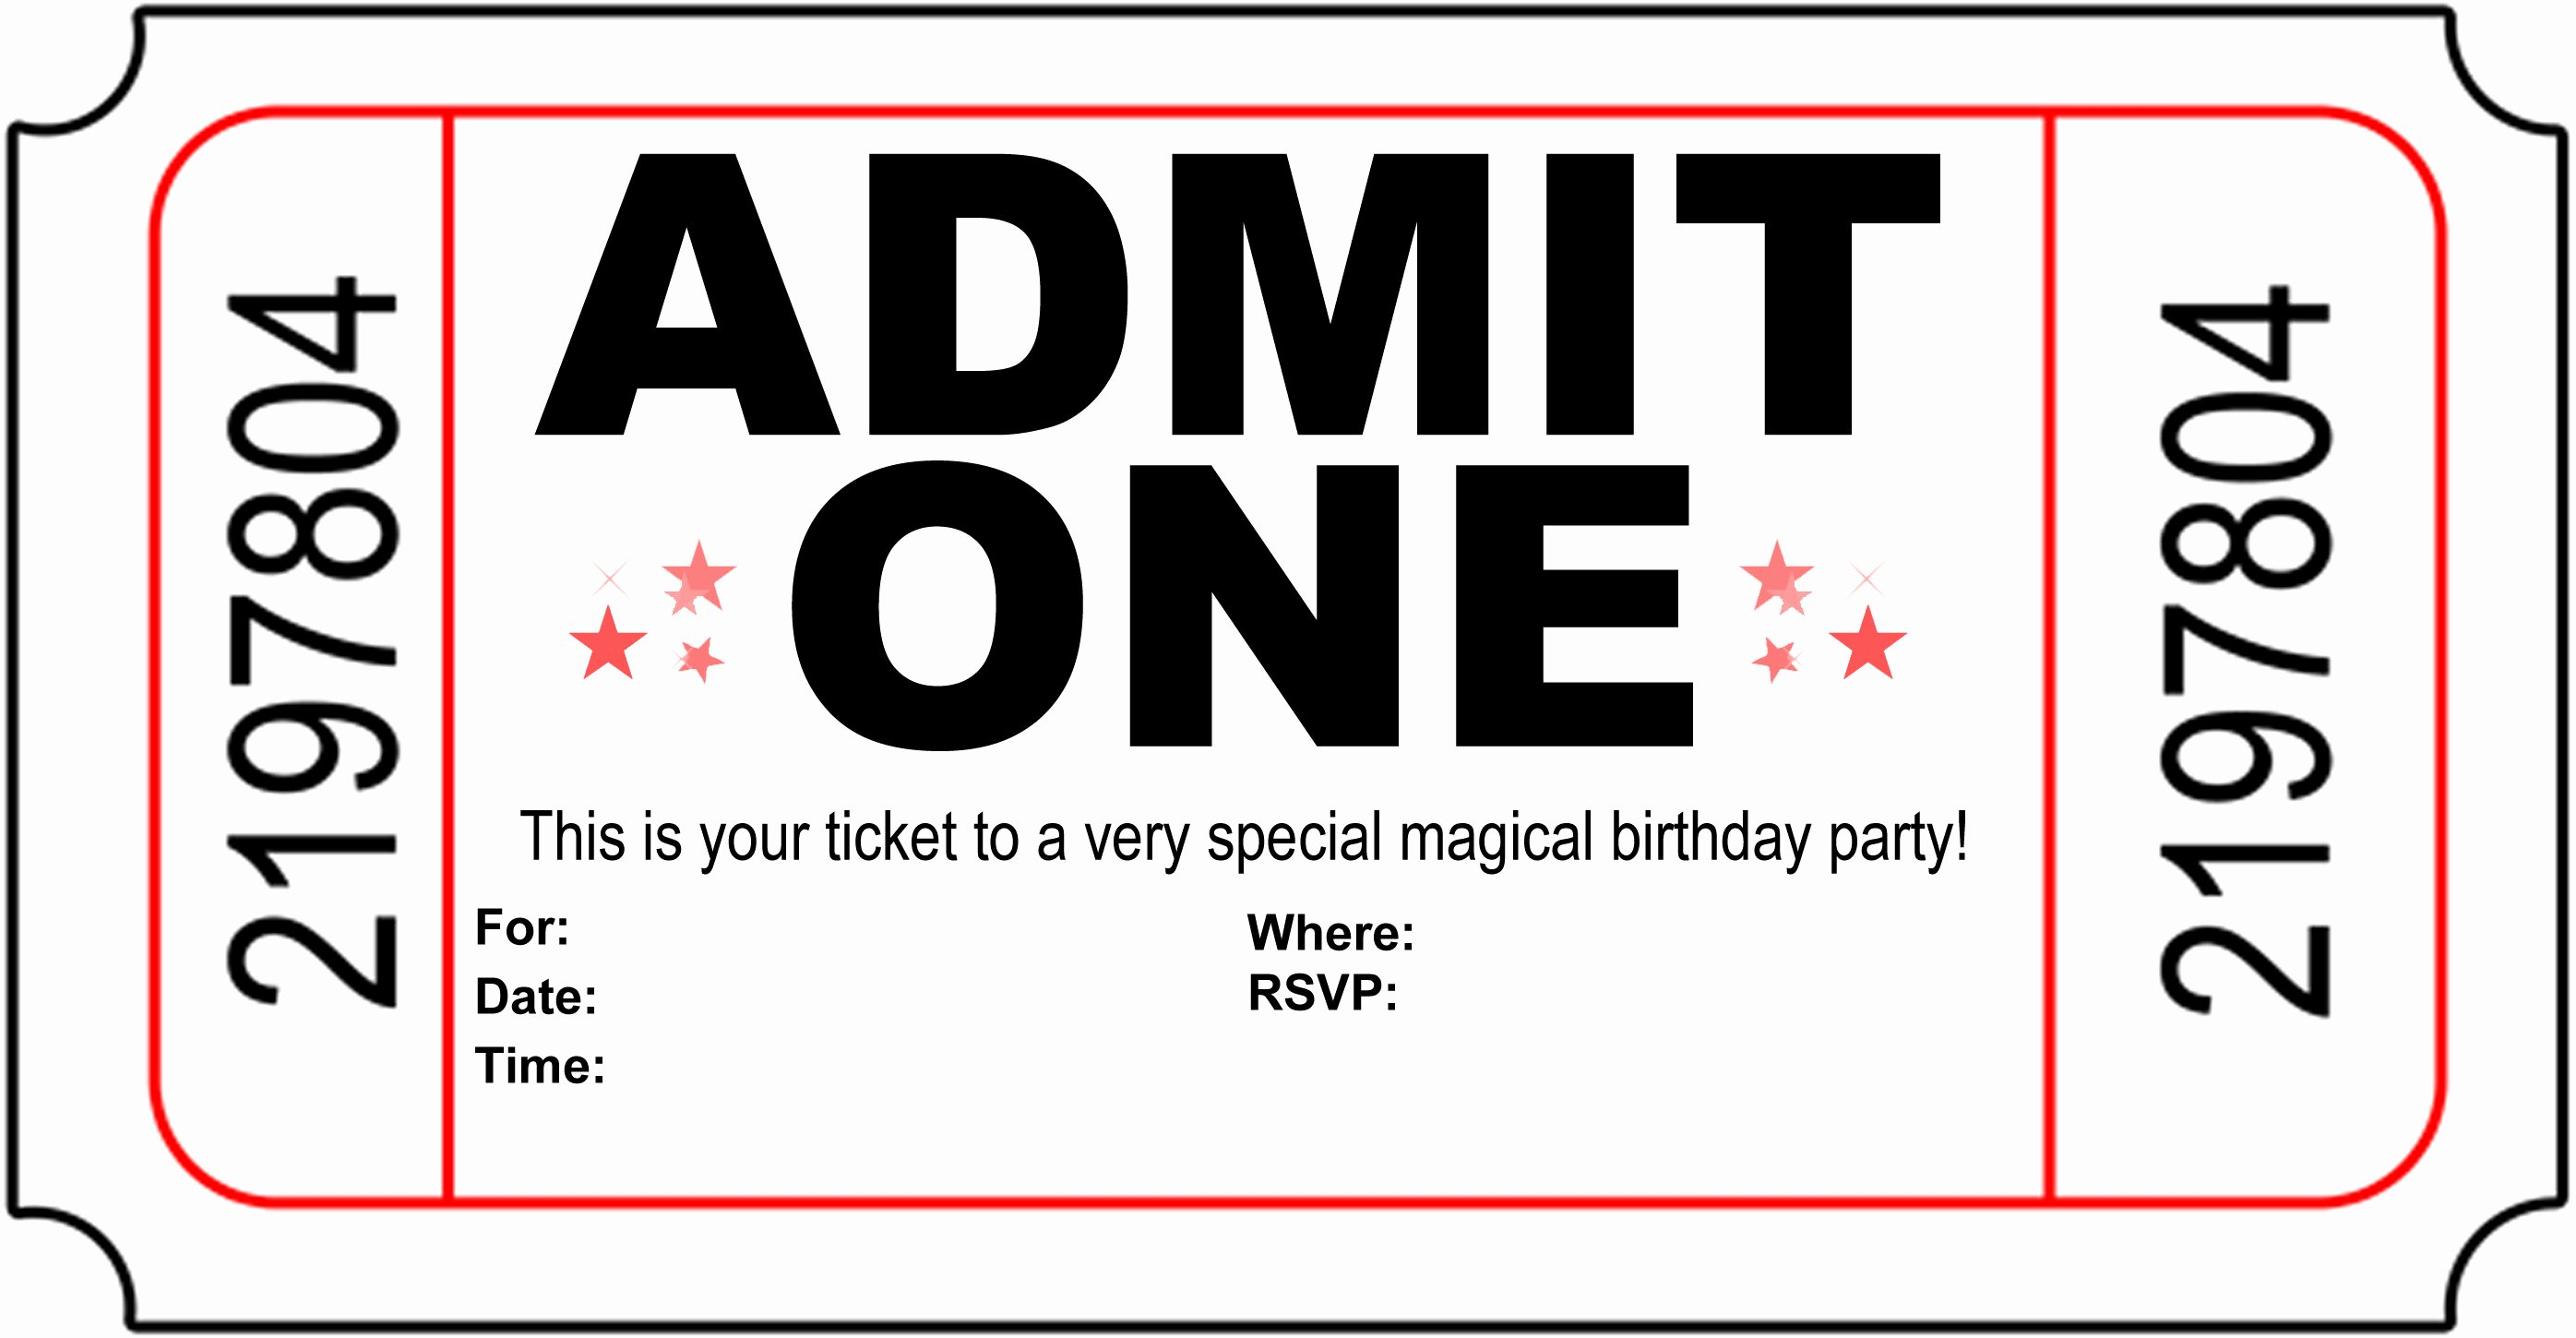 Free Printable Carnival themed Invitations Unique Free Carnival Ticket Invitation Template Download Free Clip Art Free Clip Art On Clipart Library